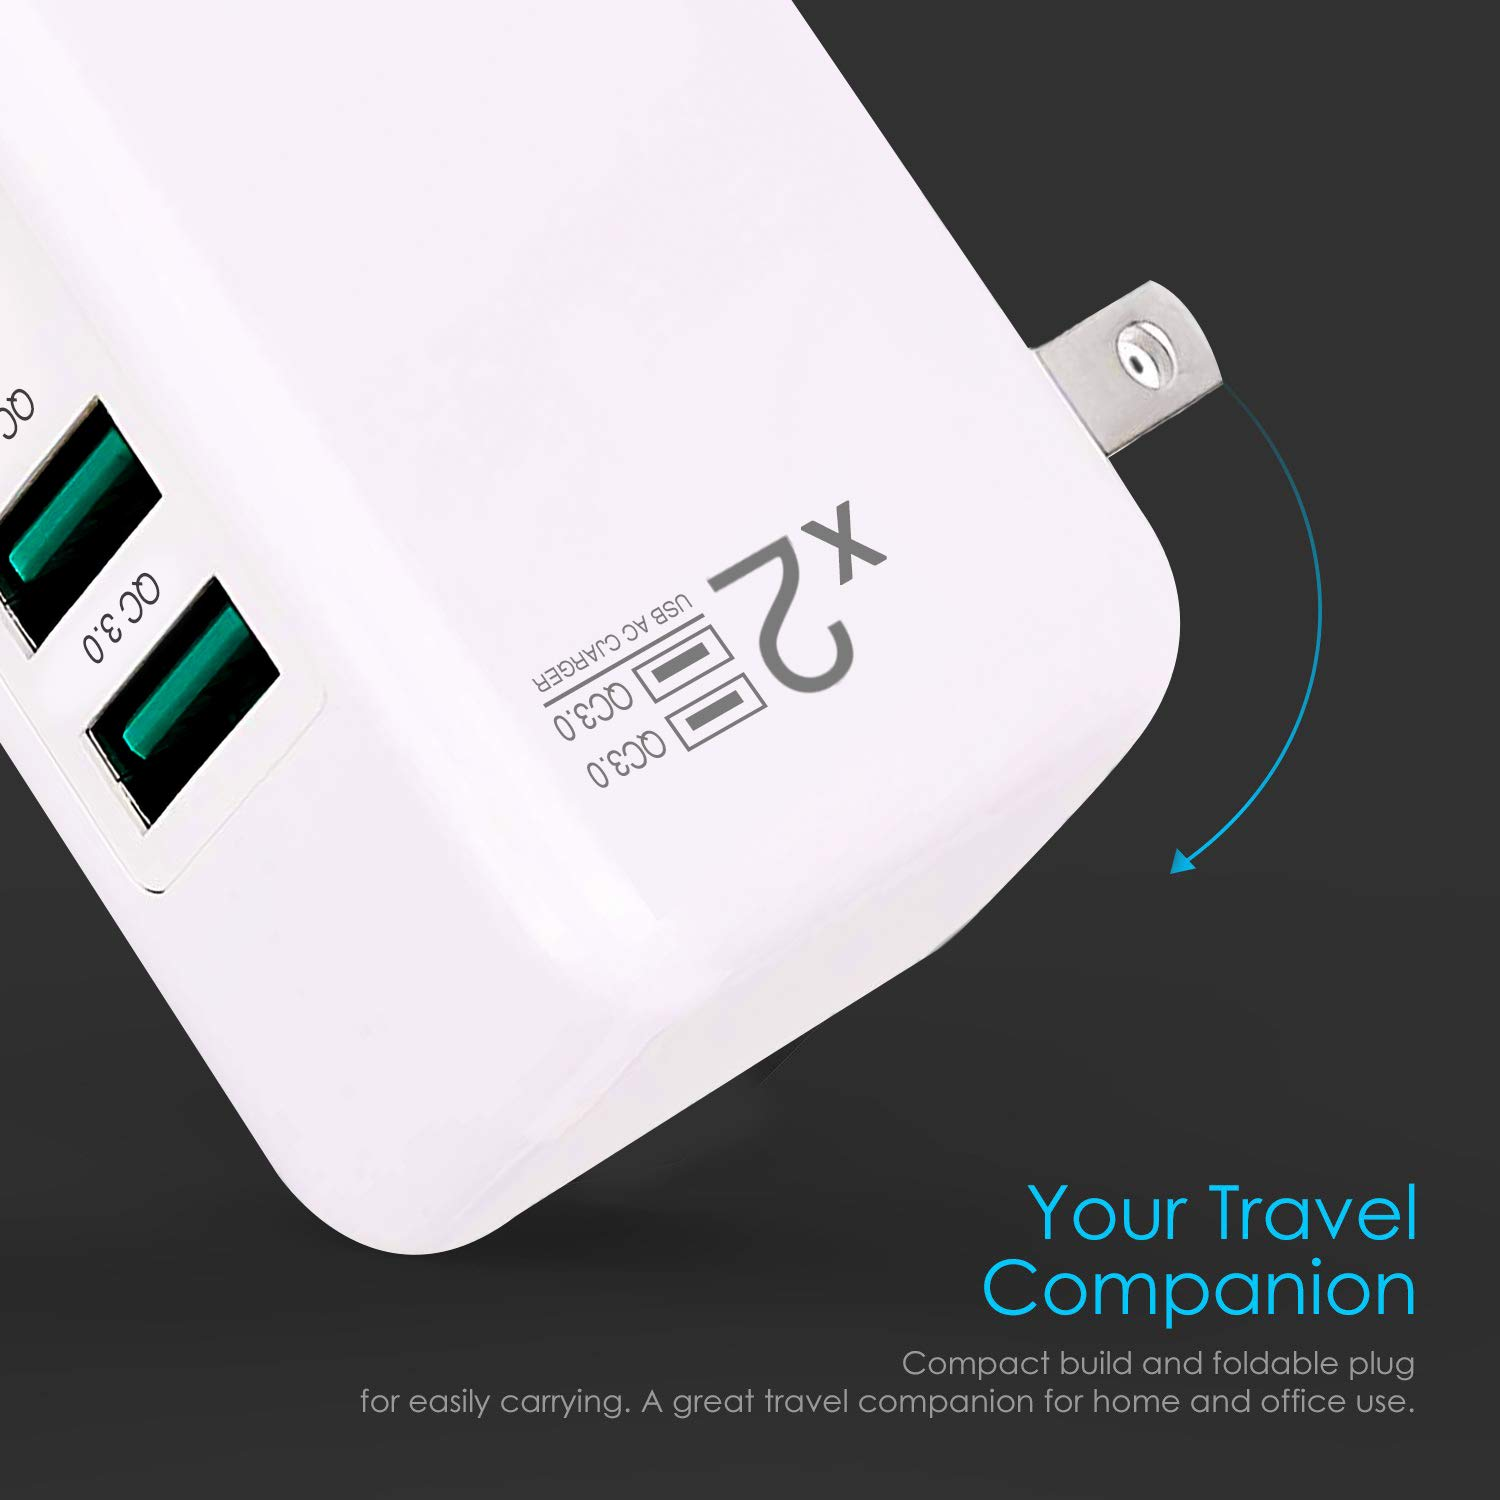 QC3.0=2USB Dual Quick Charge3.0 USB Wall Charger Adapter Charging Block Plug,30WTravel QC2.0 SmartPorts+Foldable Plug for SamsungS9S8 Note8,iPhoneX//8iPad LGNexusHTC/&More